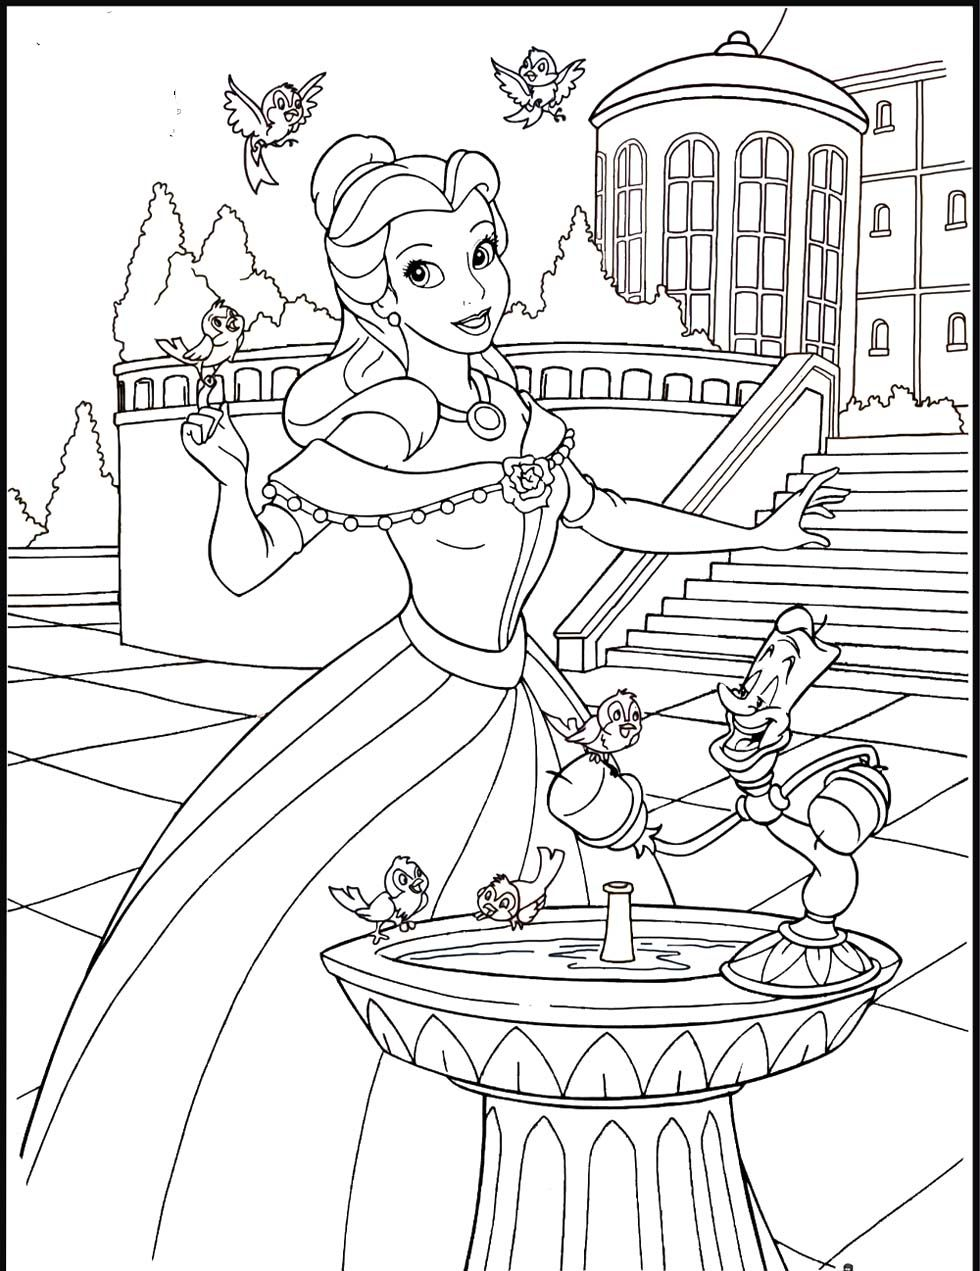 strawberry shortcake coloring pages - Google Search | coloring ...